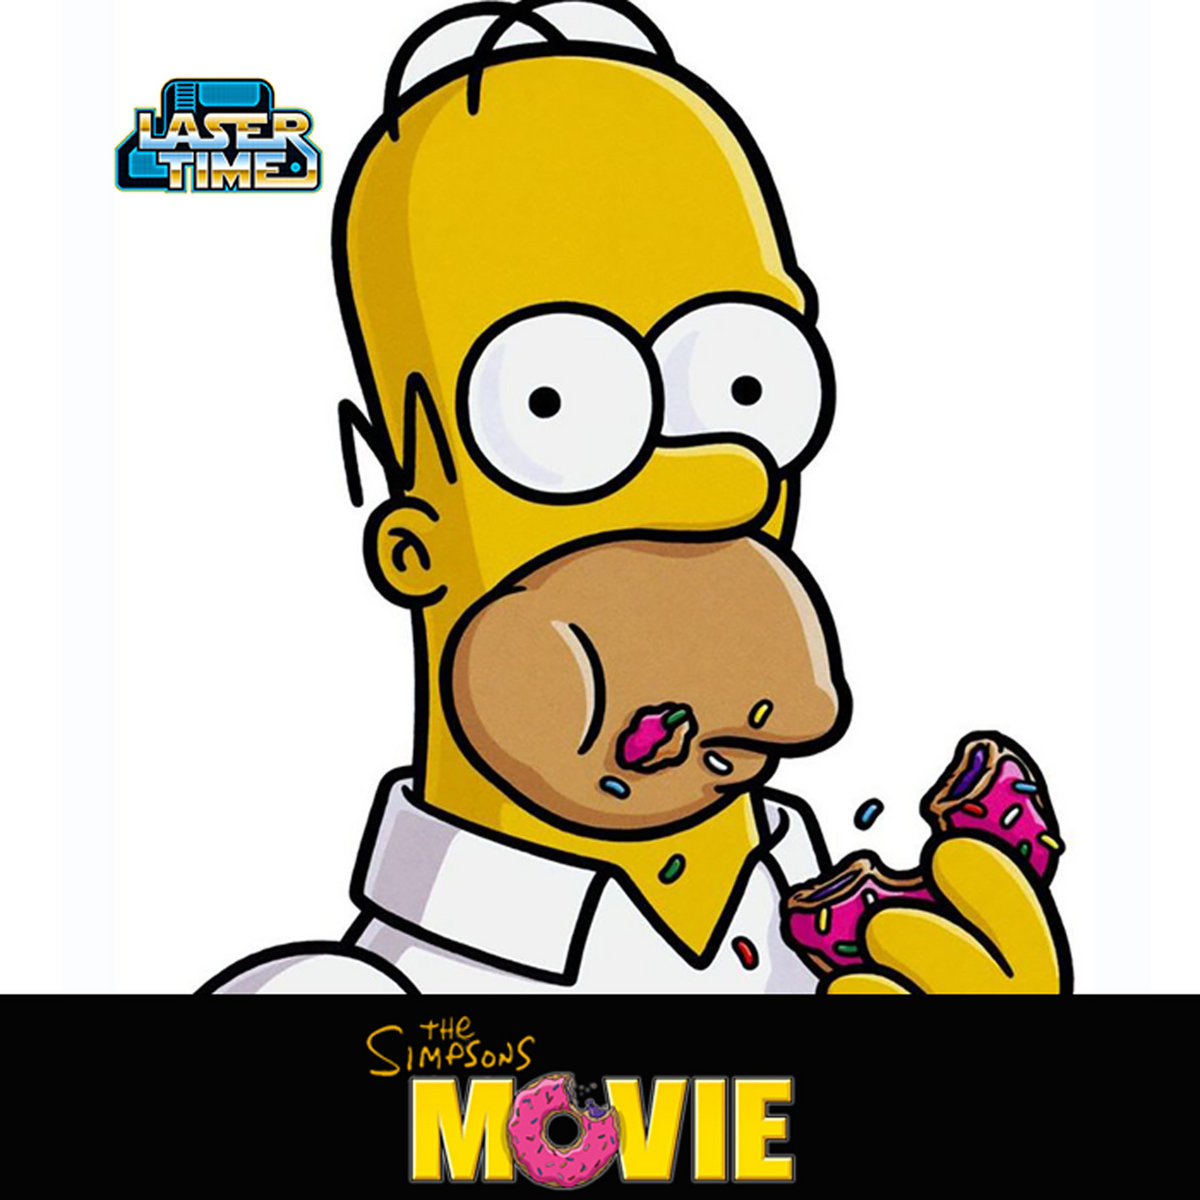 The Simpsons Movie Commentary Lasertimepodcast Com Laser Time